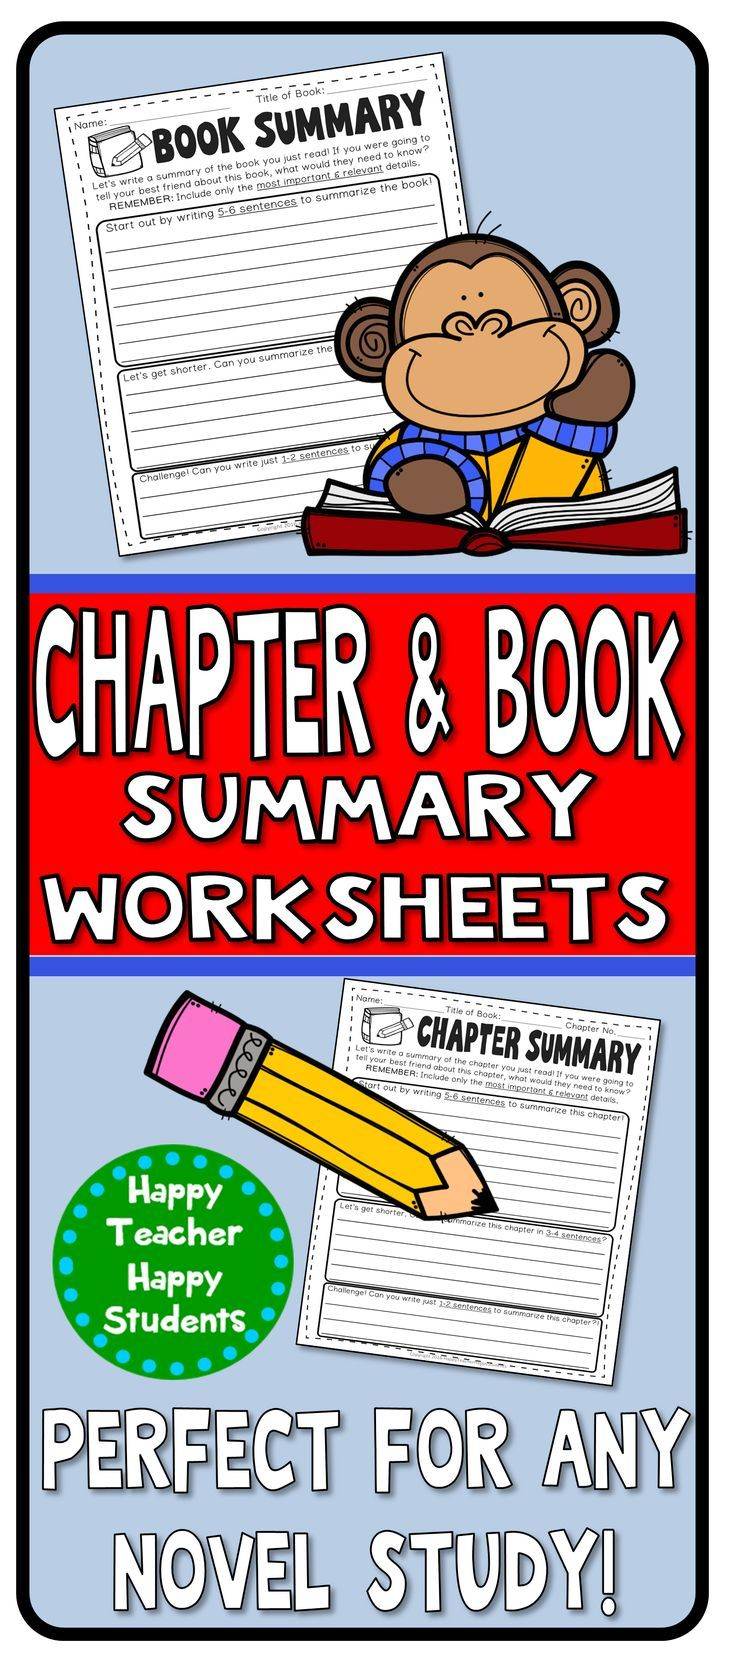 Book Summary And Chapter Summary Worksheets Templates For Any